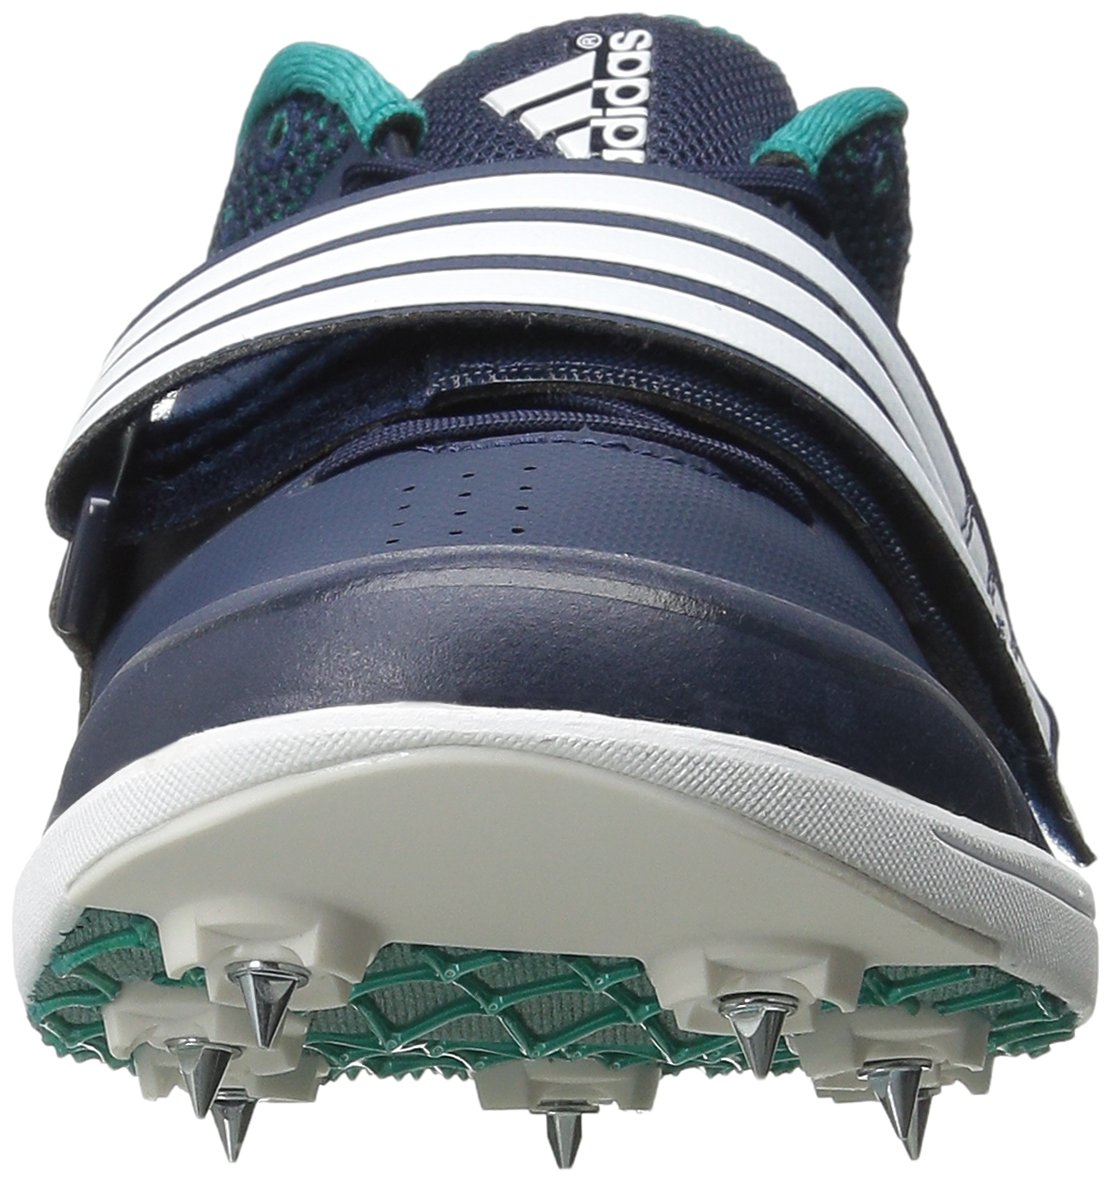 adidas Performance Women's Adizero TJ/PV Running Shoe with Spikes,Collegiate Navy/White/Green,15 M US by adidas (Image #4)